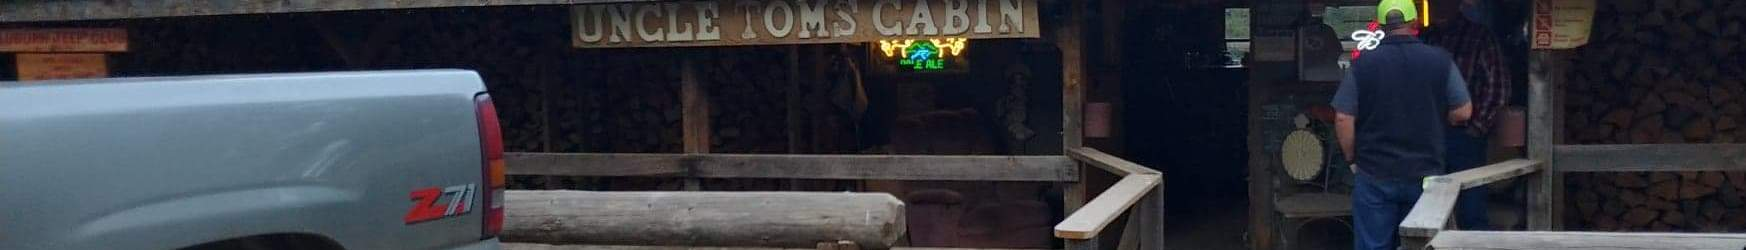 Uncle Tom's Cabin – 2/22/20